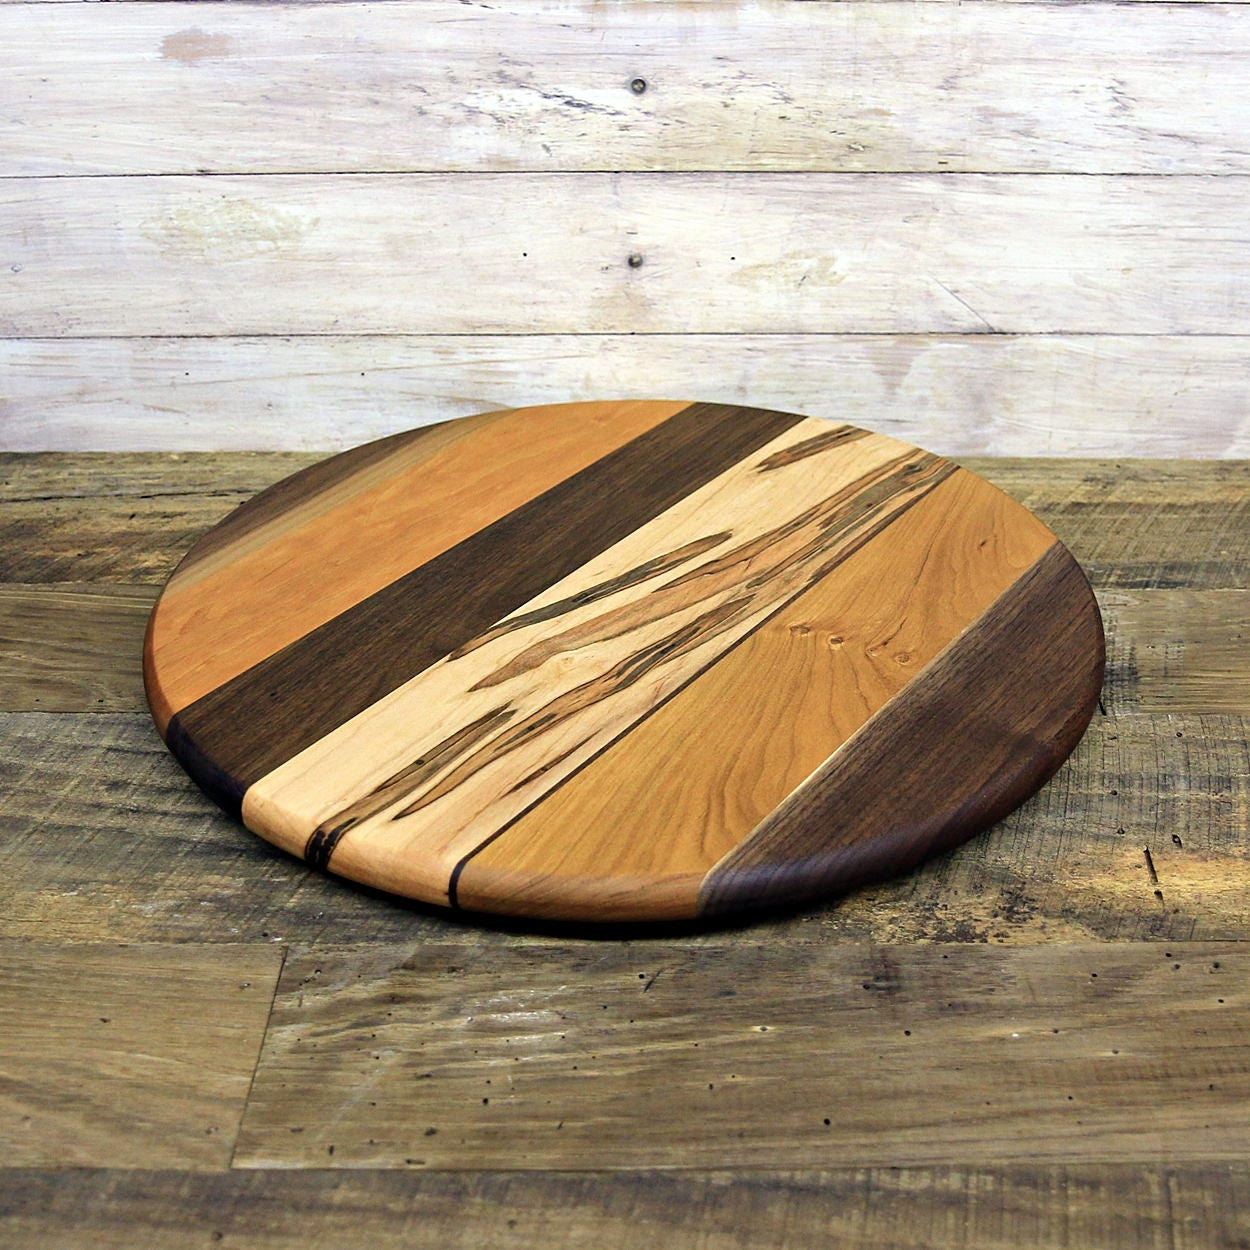 large lazy susan 16 inches round oil rubbed finish low profile walnut ambrosia maple and cherry wood random layout